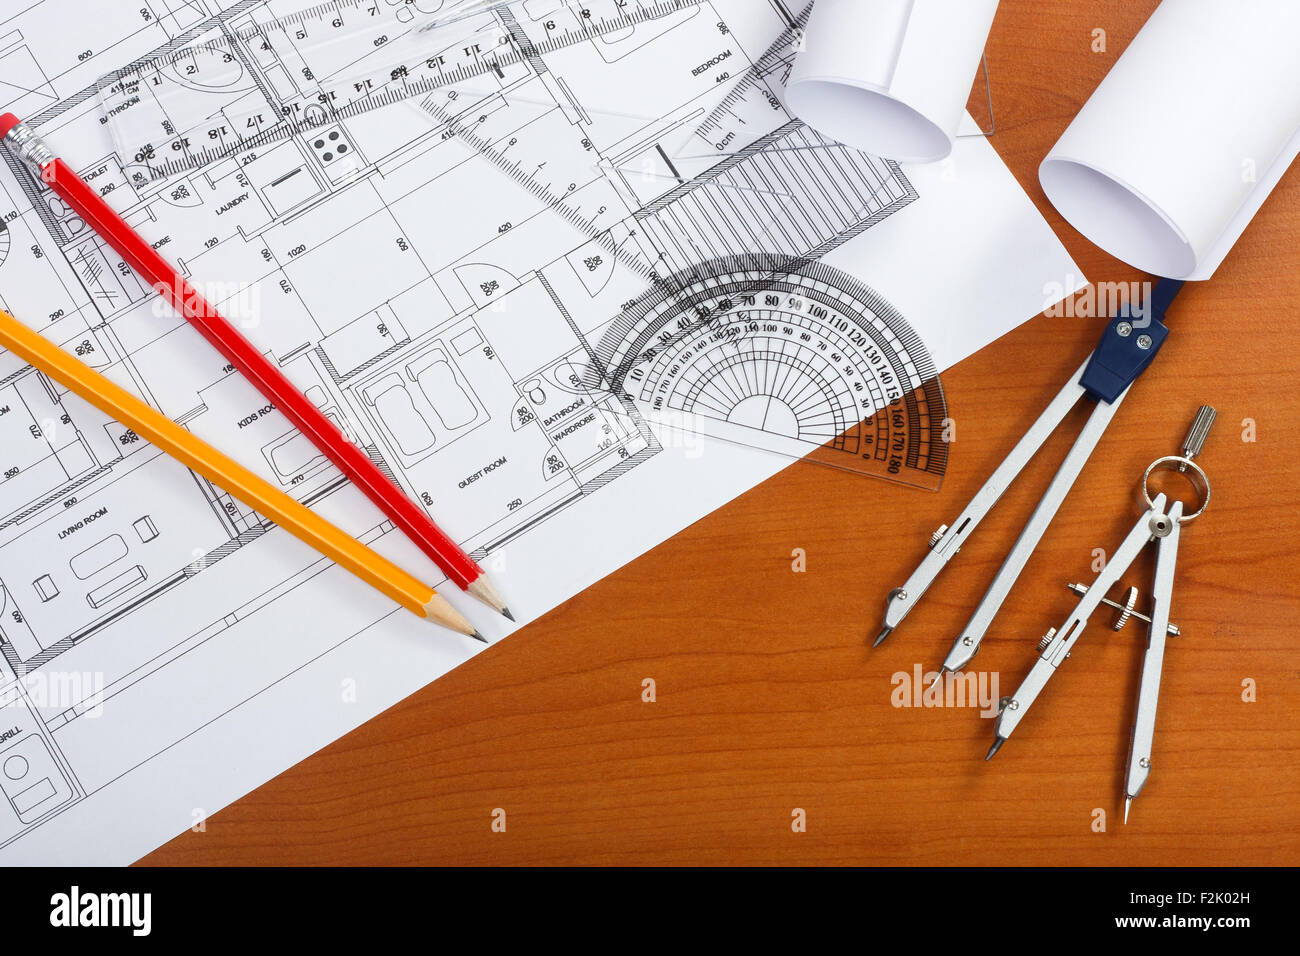 hight resolution of architectural plans pencils and ruler on the desk